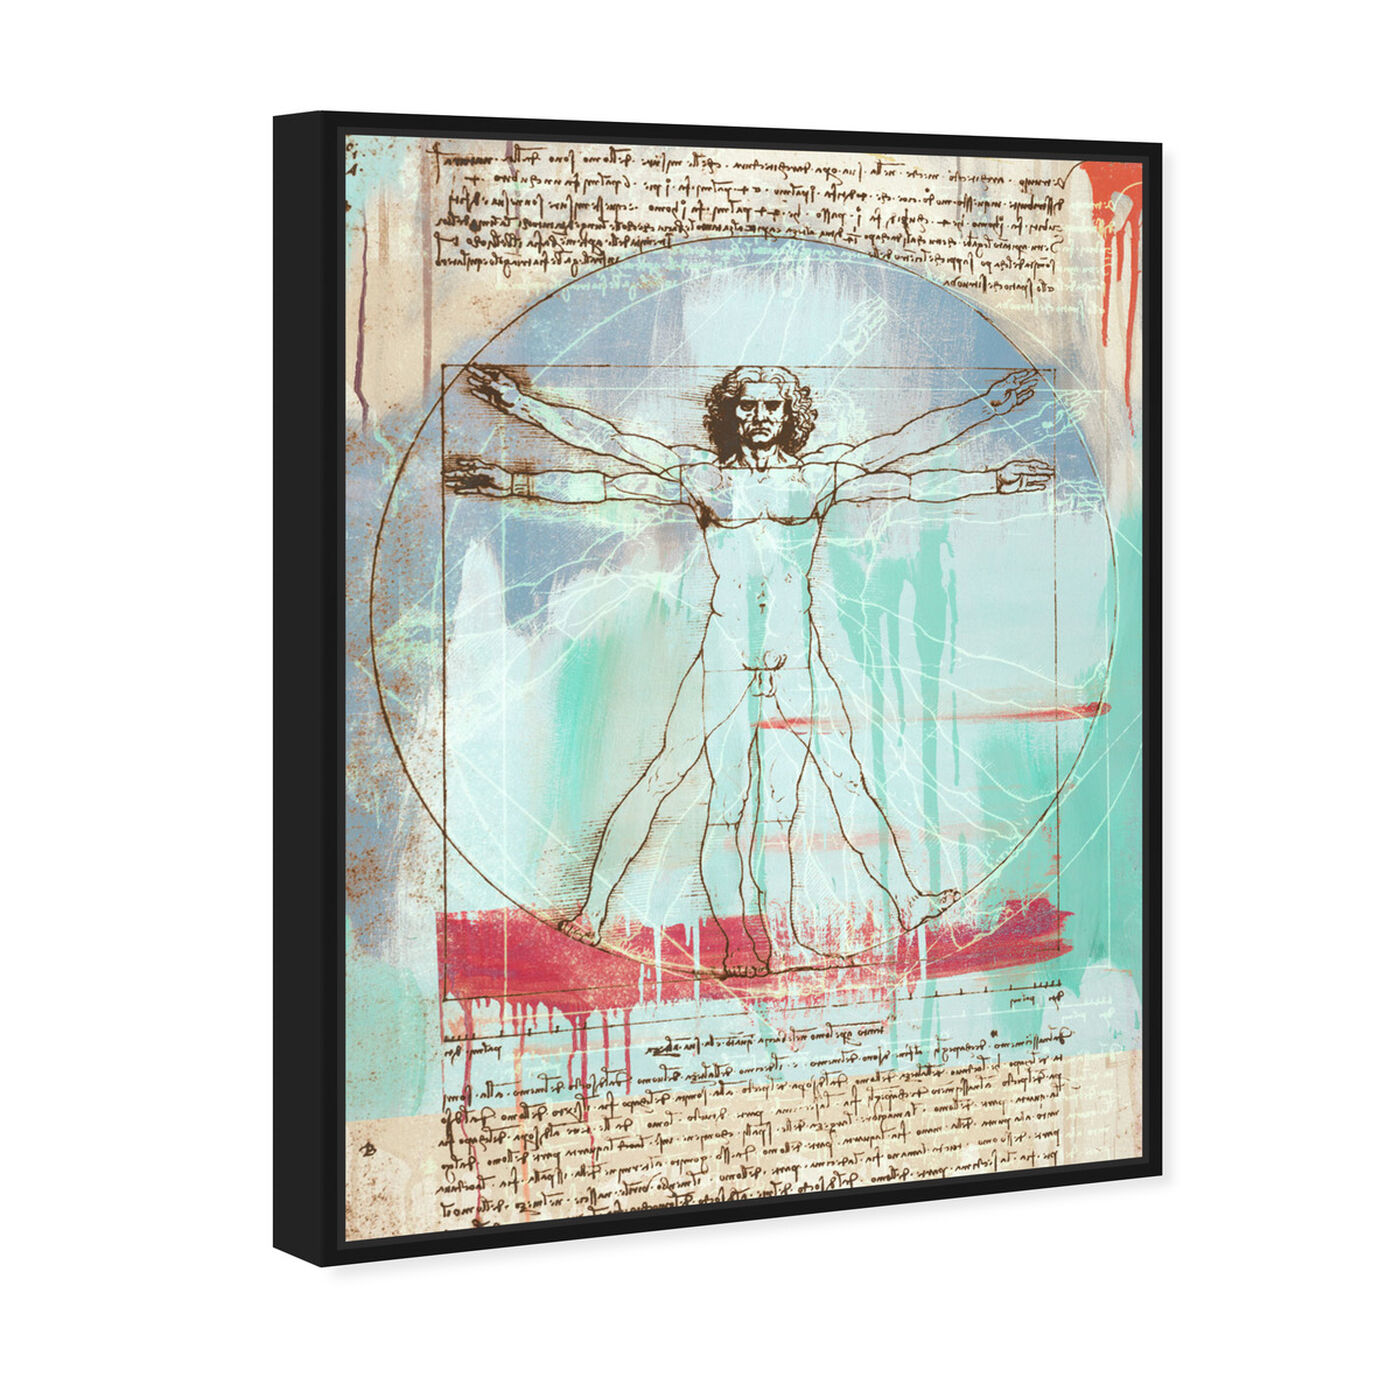 Angled view of Sai - Vitruvian Man 3EH2821 featuring education and office and scientist art.